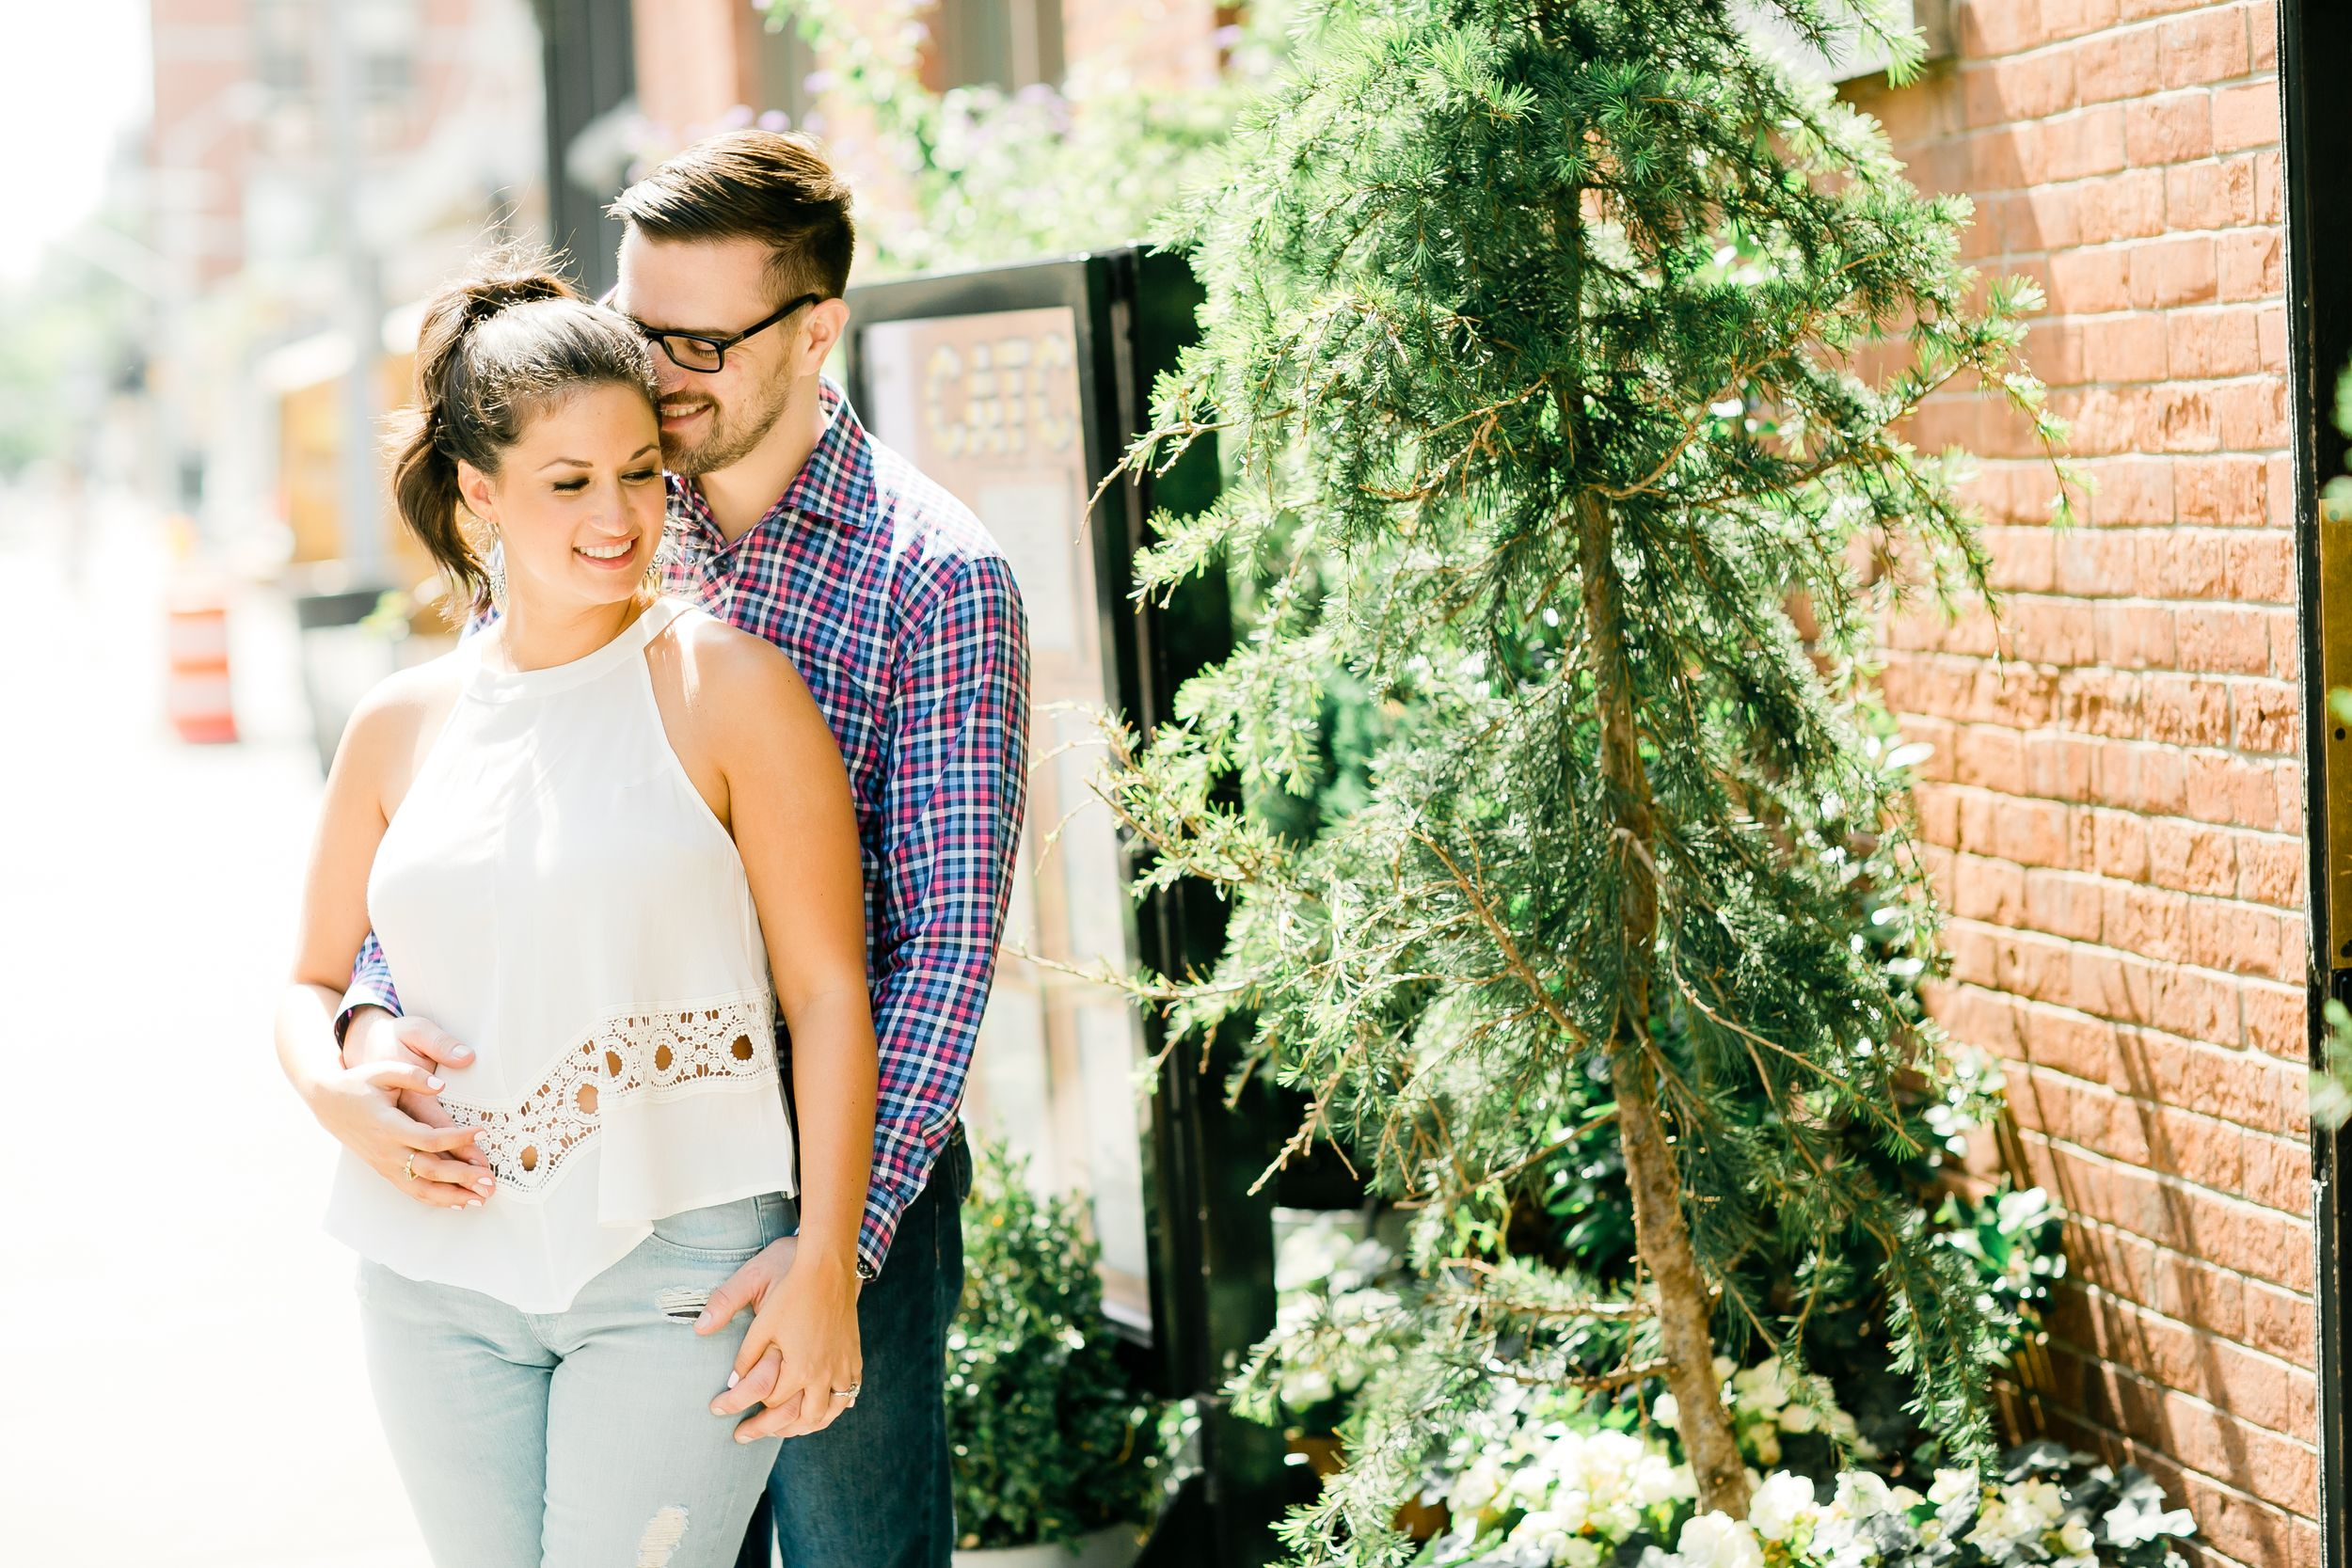 spring engagement photos in new york city